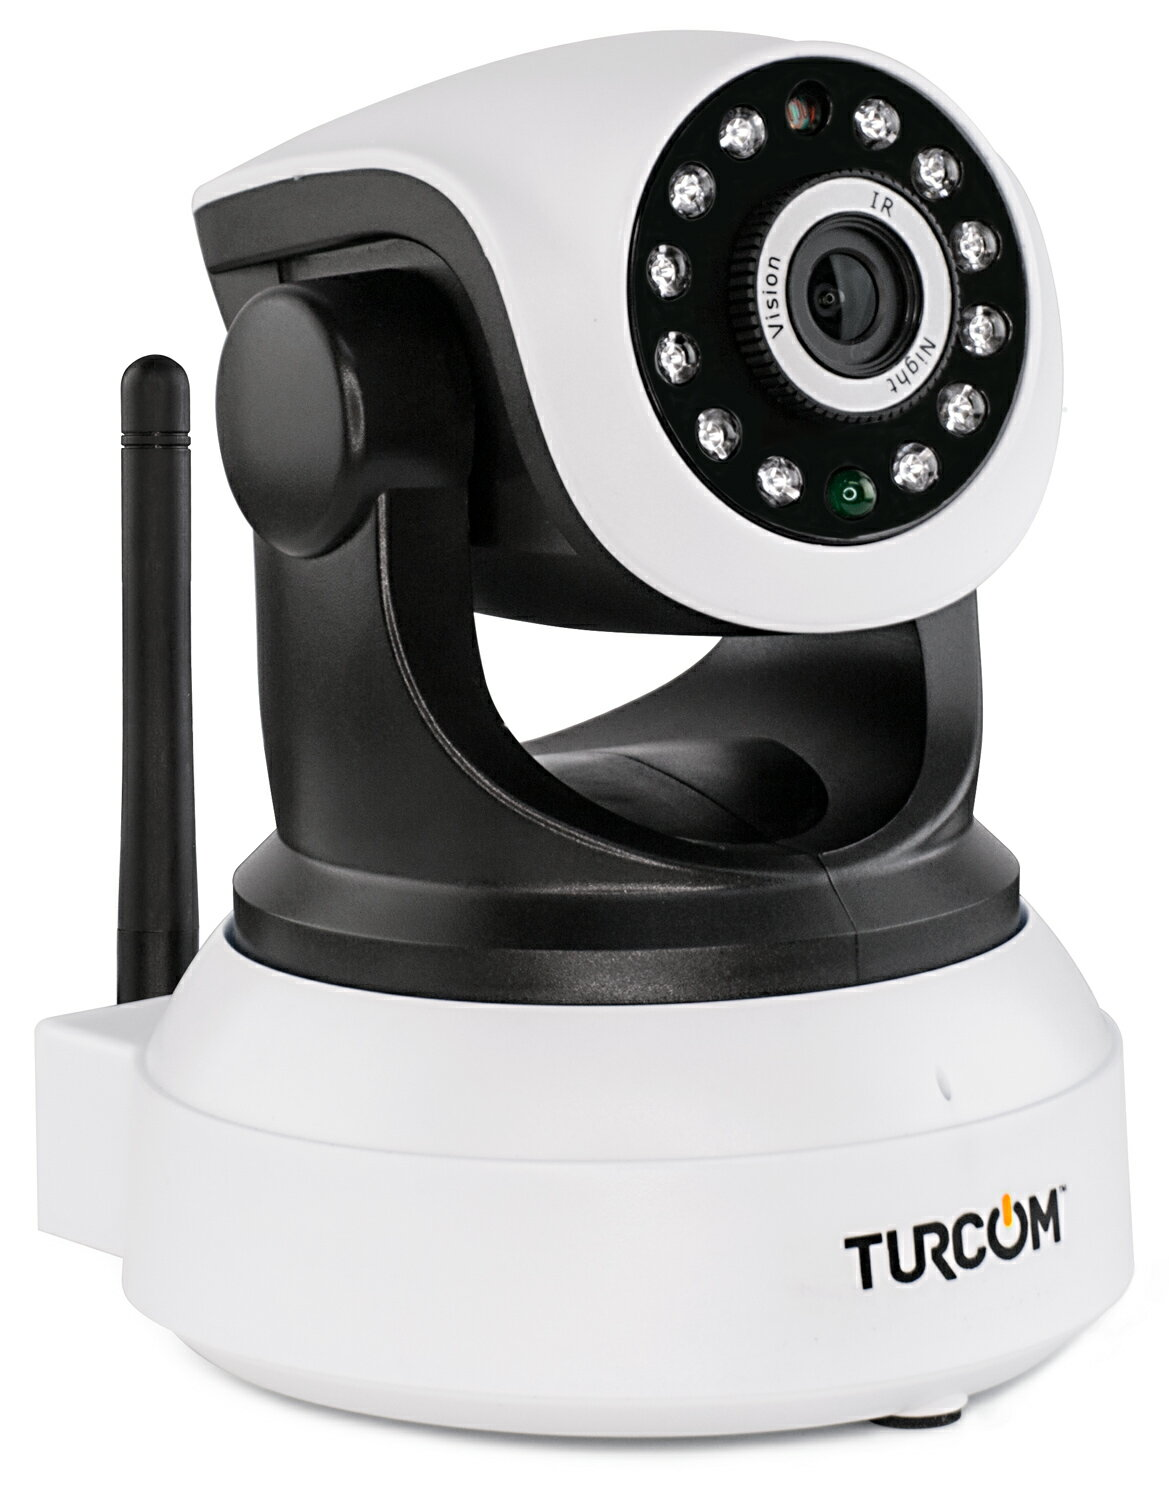 Turcom IP Camera Baby Monitor, Night Vision, HD, Two Way Audio, WiFi  Wireless Security, Connects to Tablets and iPhone or Android Phones